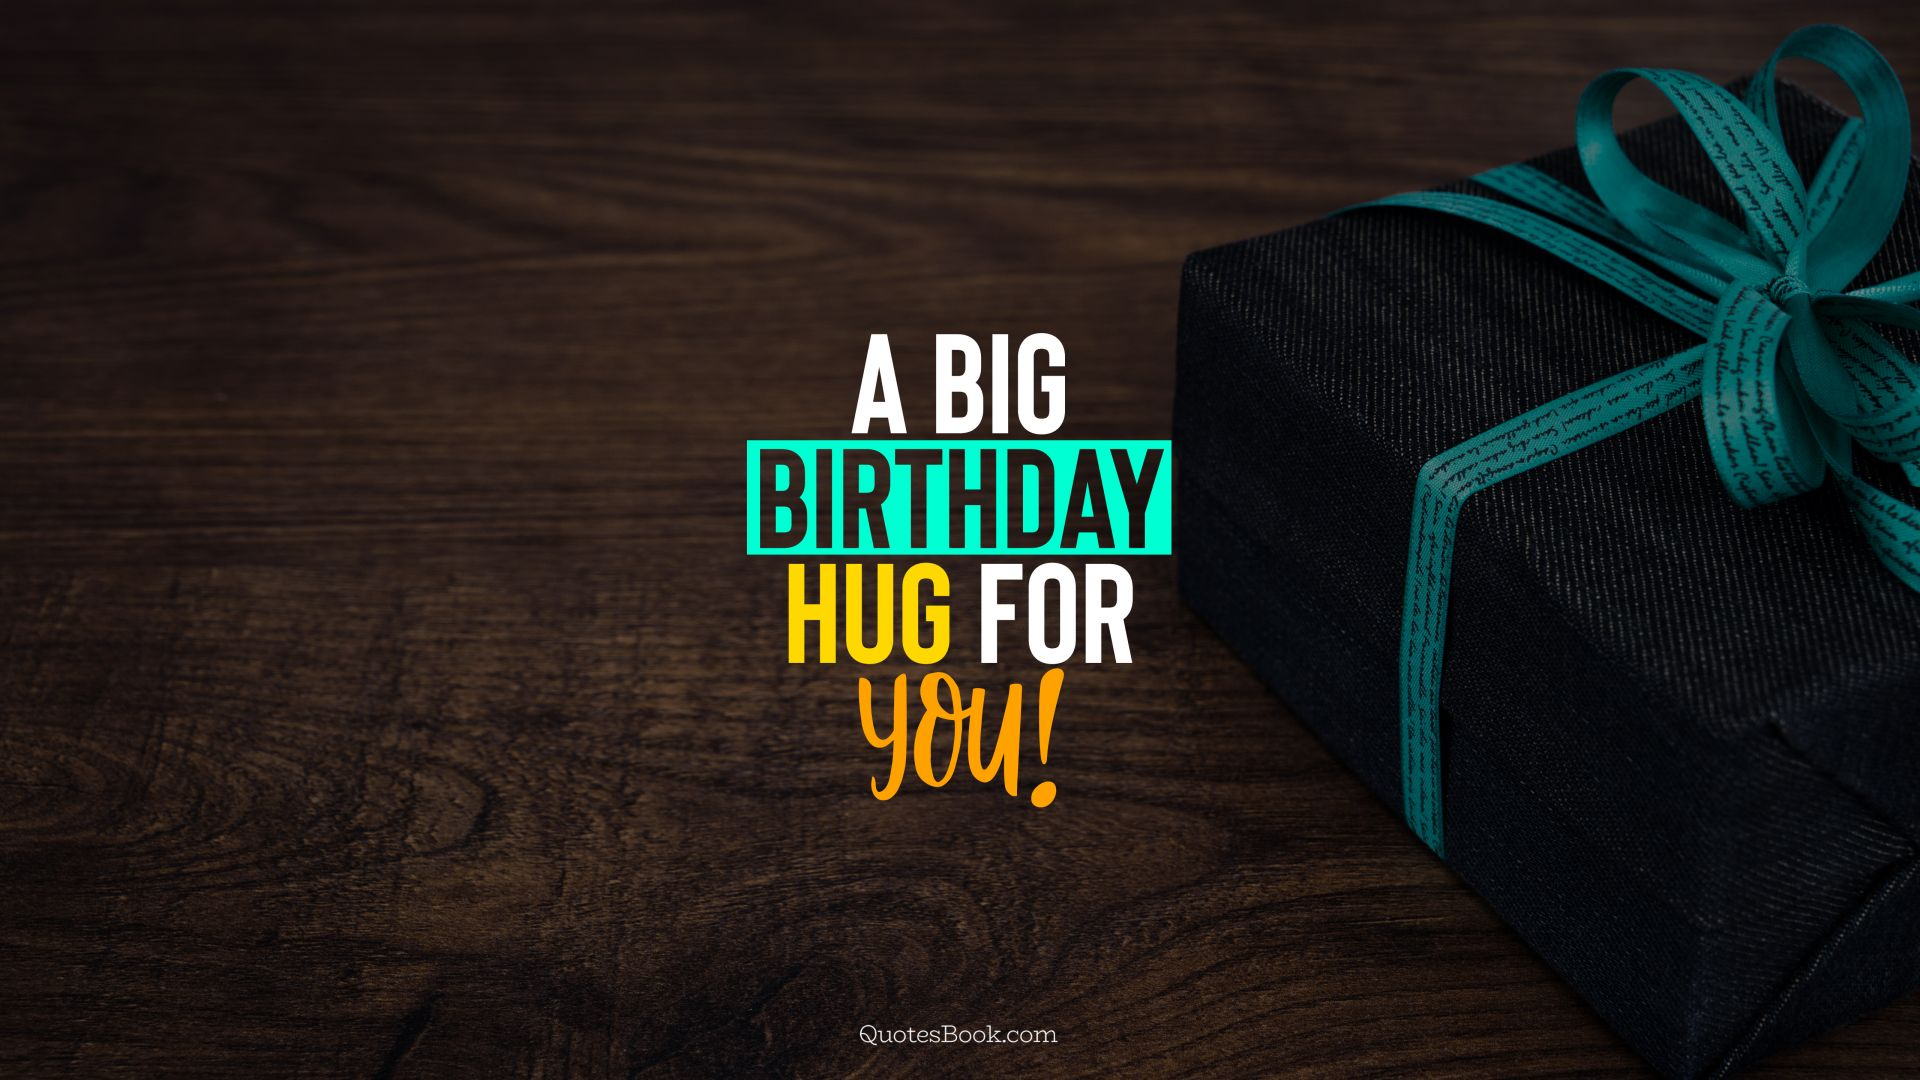 A big Birthday hug for you!